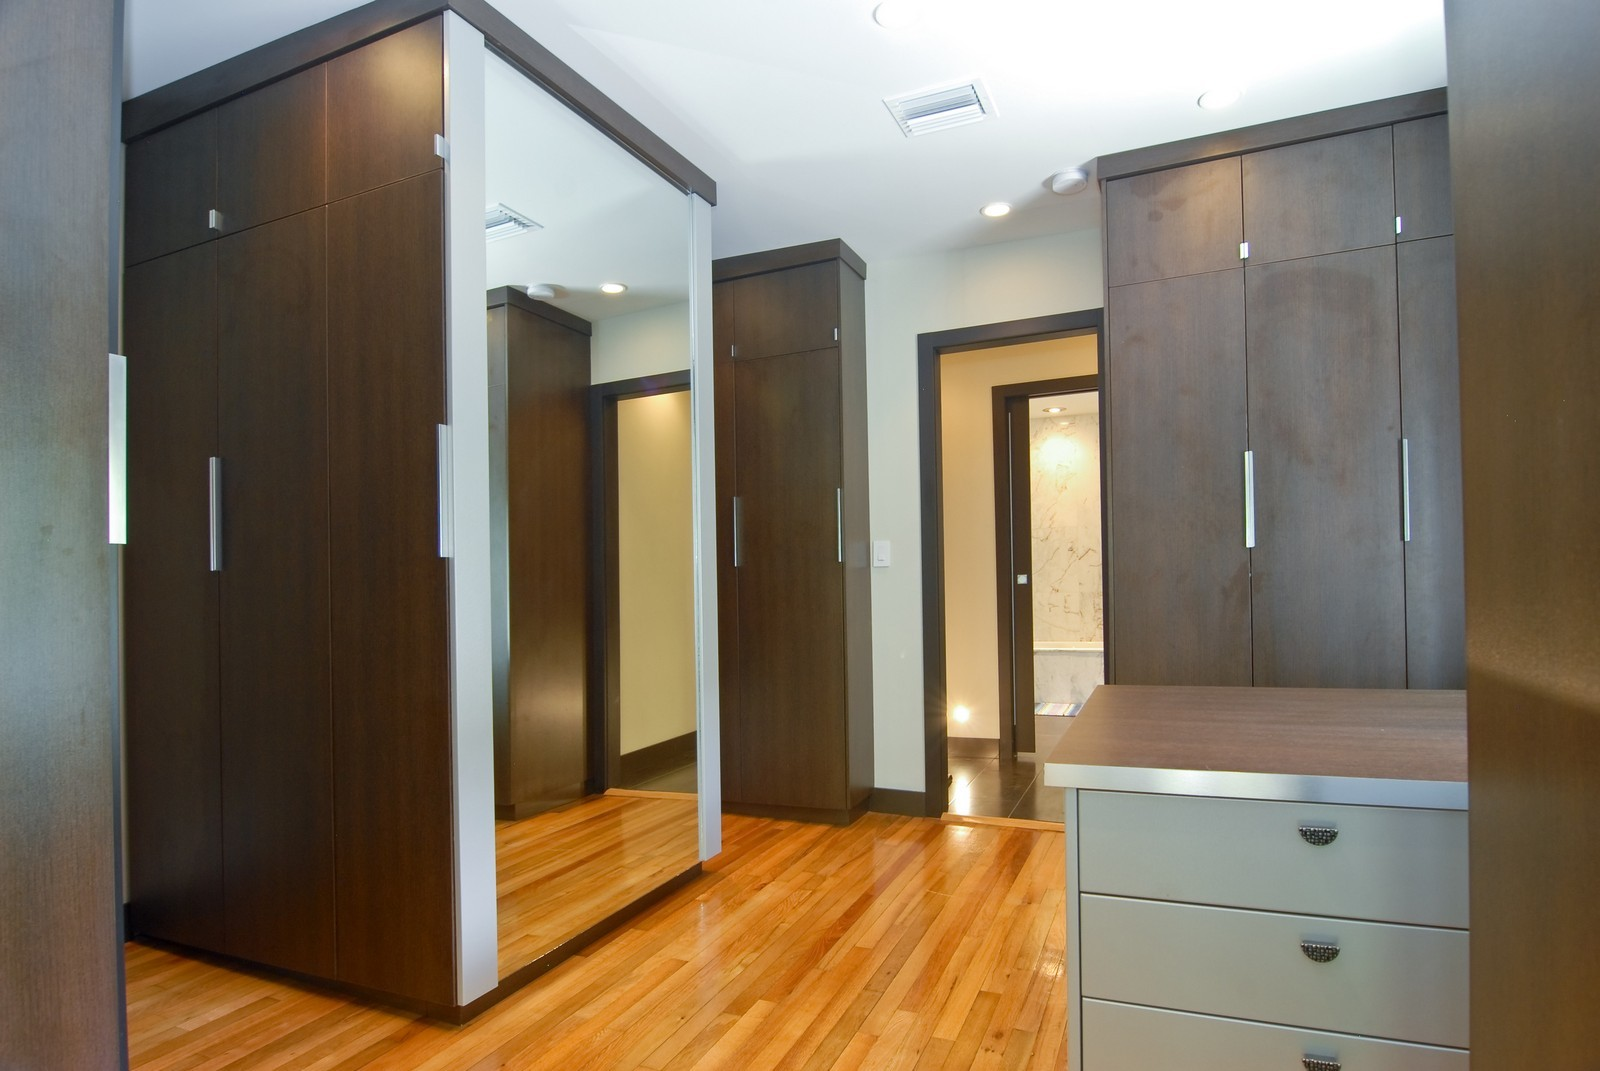 Real Estate Photography - 106 W 4th CT, Miami Beach, FL, 33139 - Master Bedroom Closet